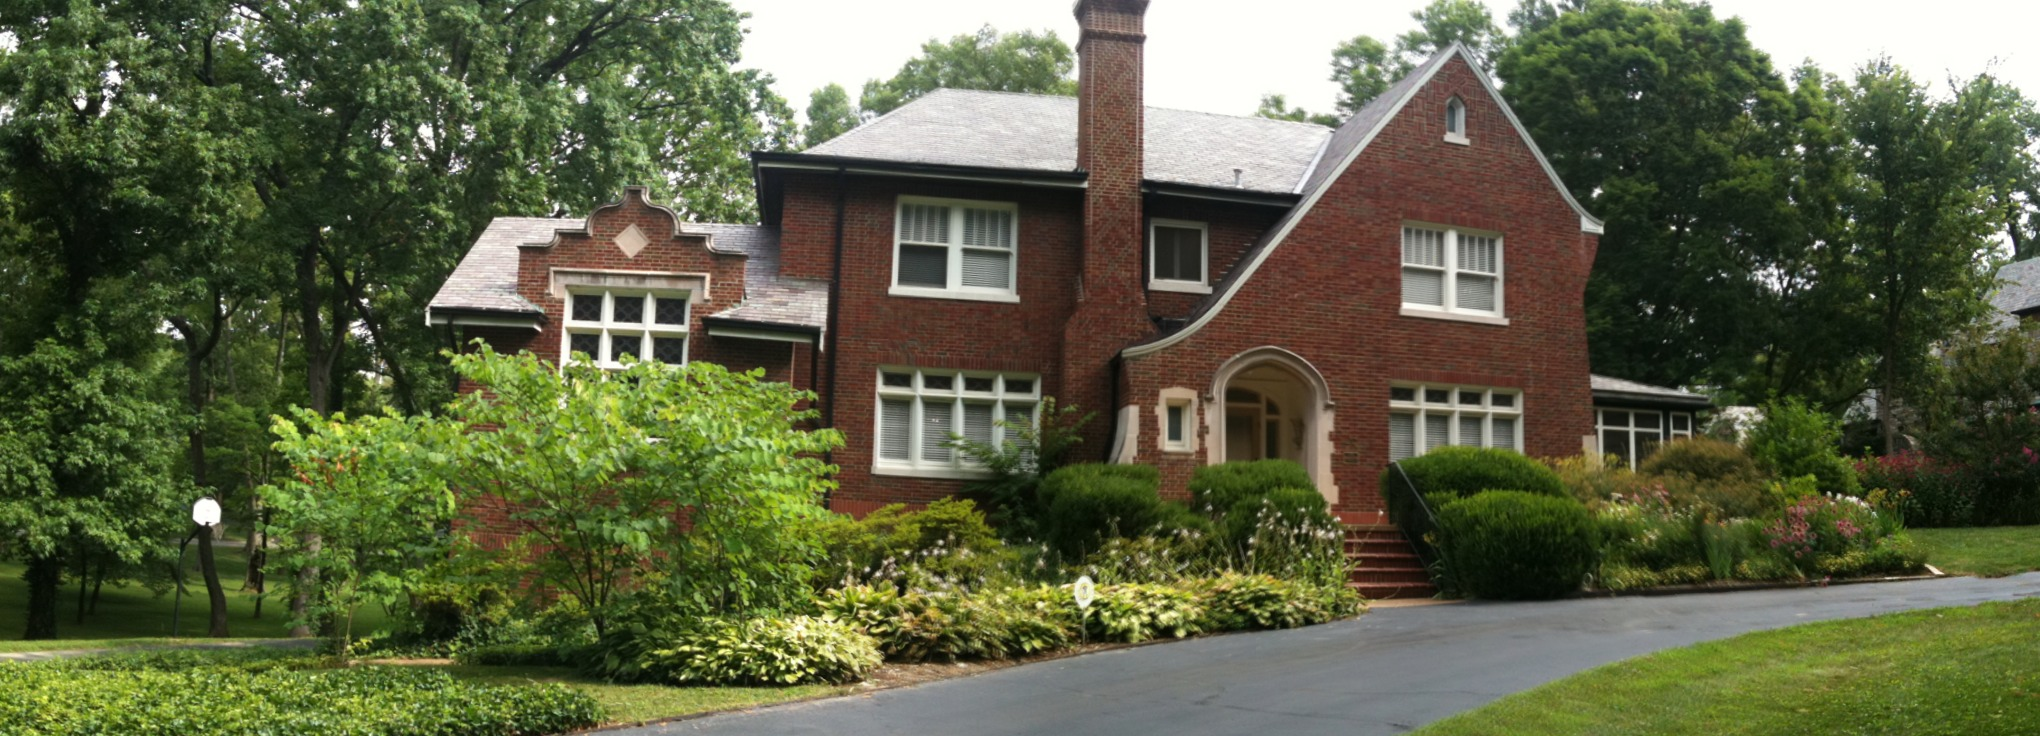 Clayton Home for Sale Carrswold Subdivision Finding